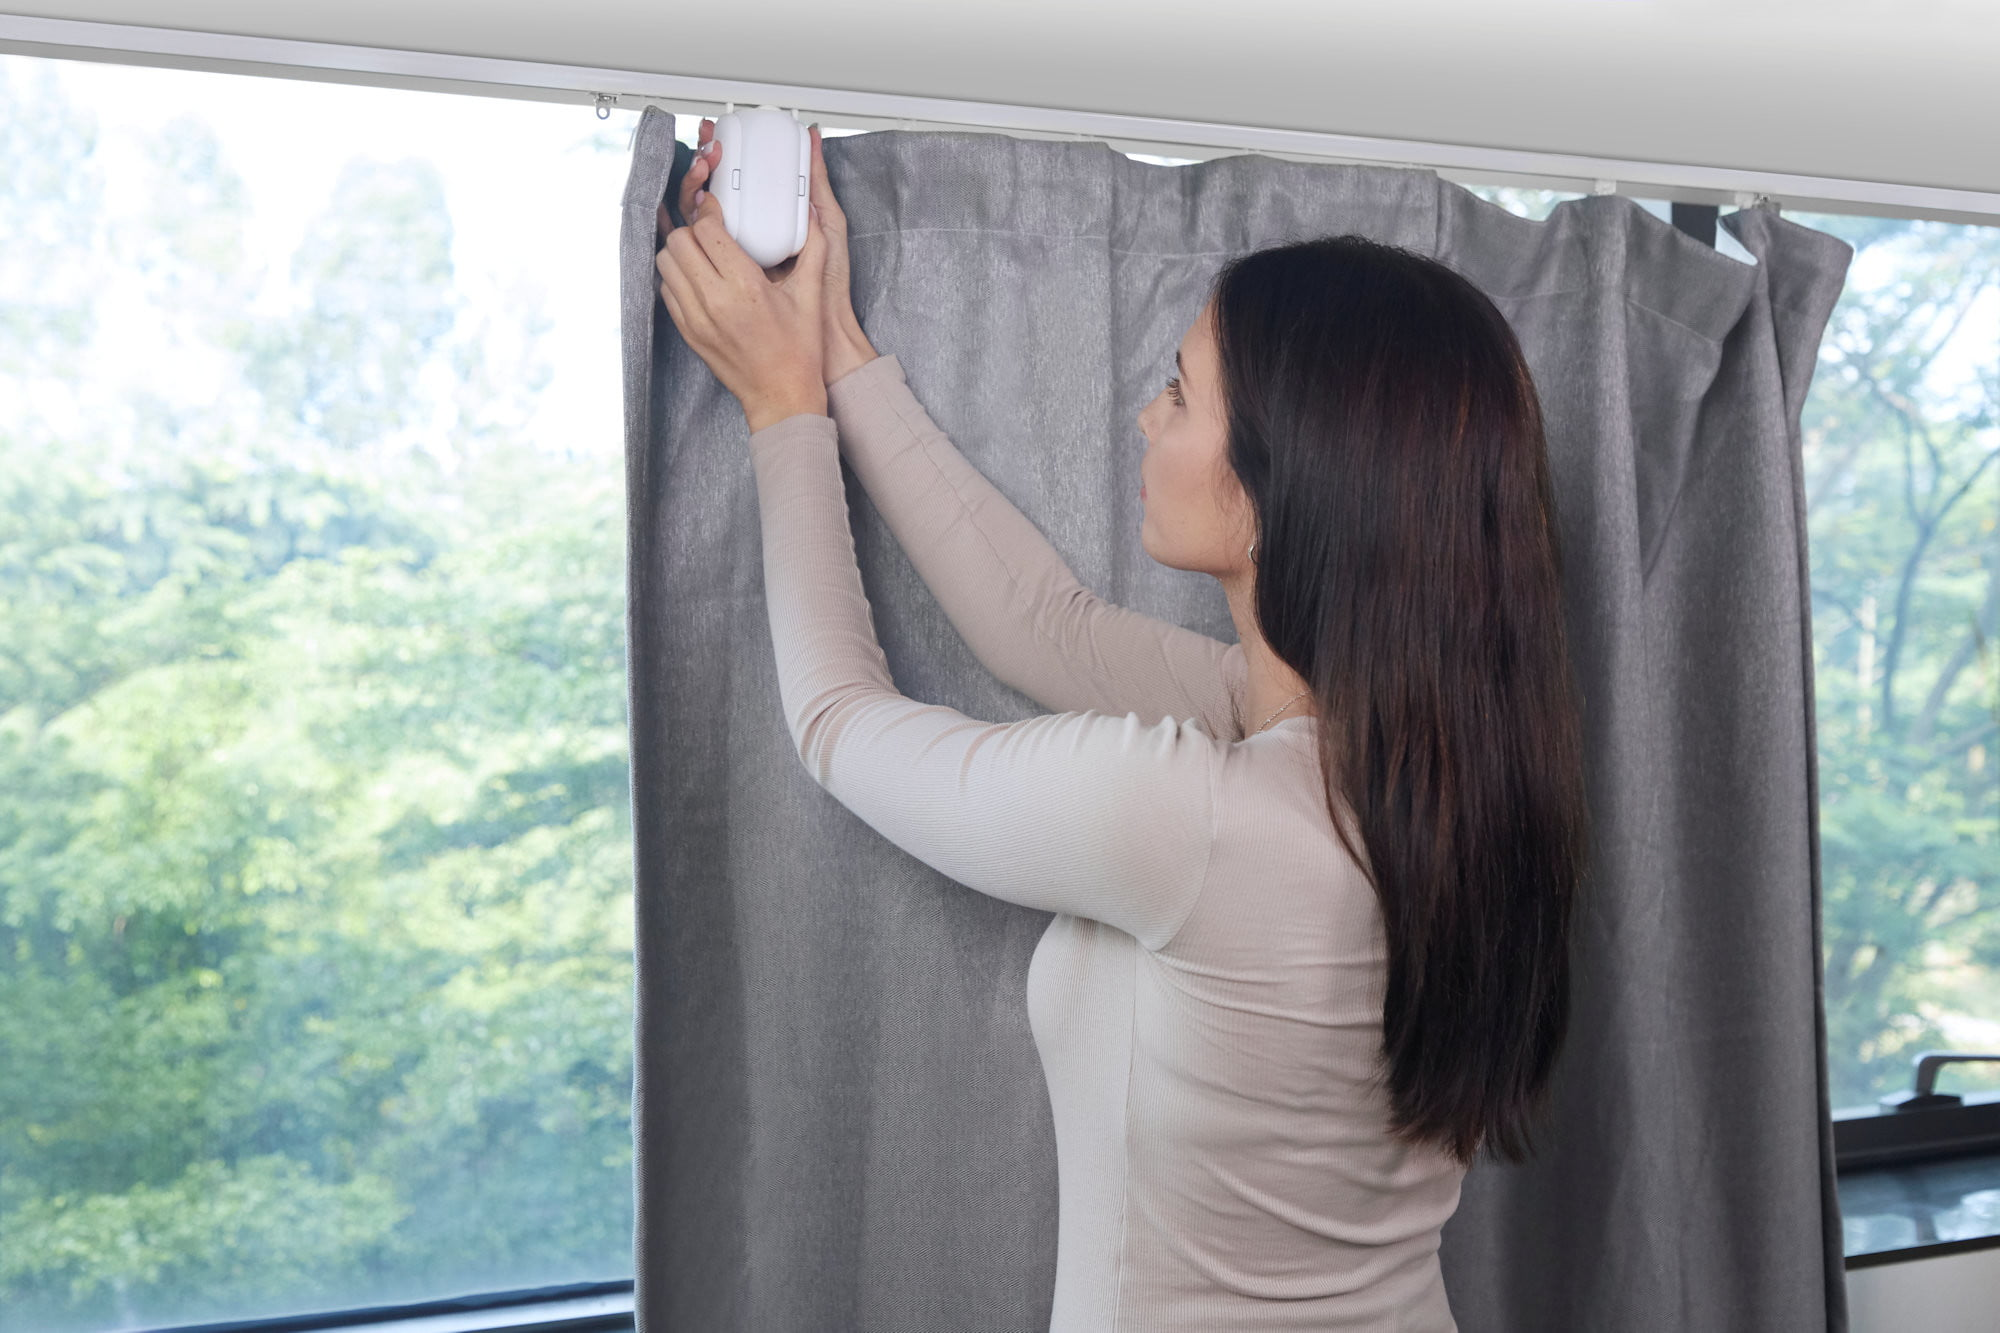 SwitchBot is the Chromecast of smart curtains